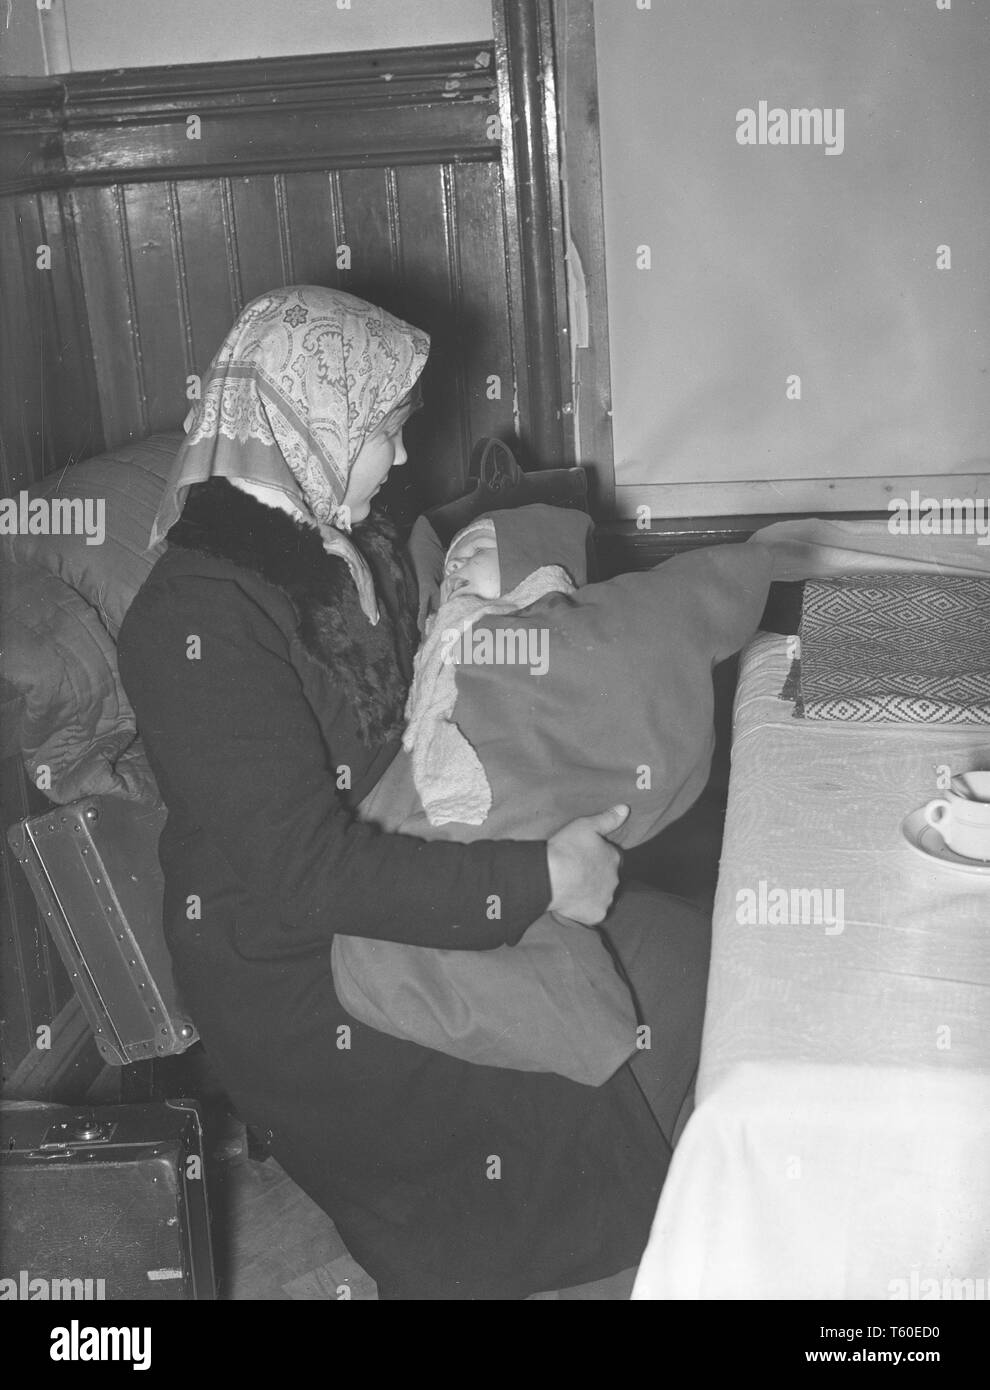 The Winter War. A military conflict between the Soviet union and Finland. It began with a Soviet invasion on november 1939 when Soviet infantery crossed the border on the Karelian Isthmus. A young mother and her baby waiting at the train station in Helsinki to be evacuated from the city.  January 1940. Photo Kristoffersson ref 98-13 - Stock Image